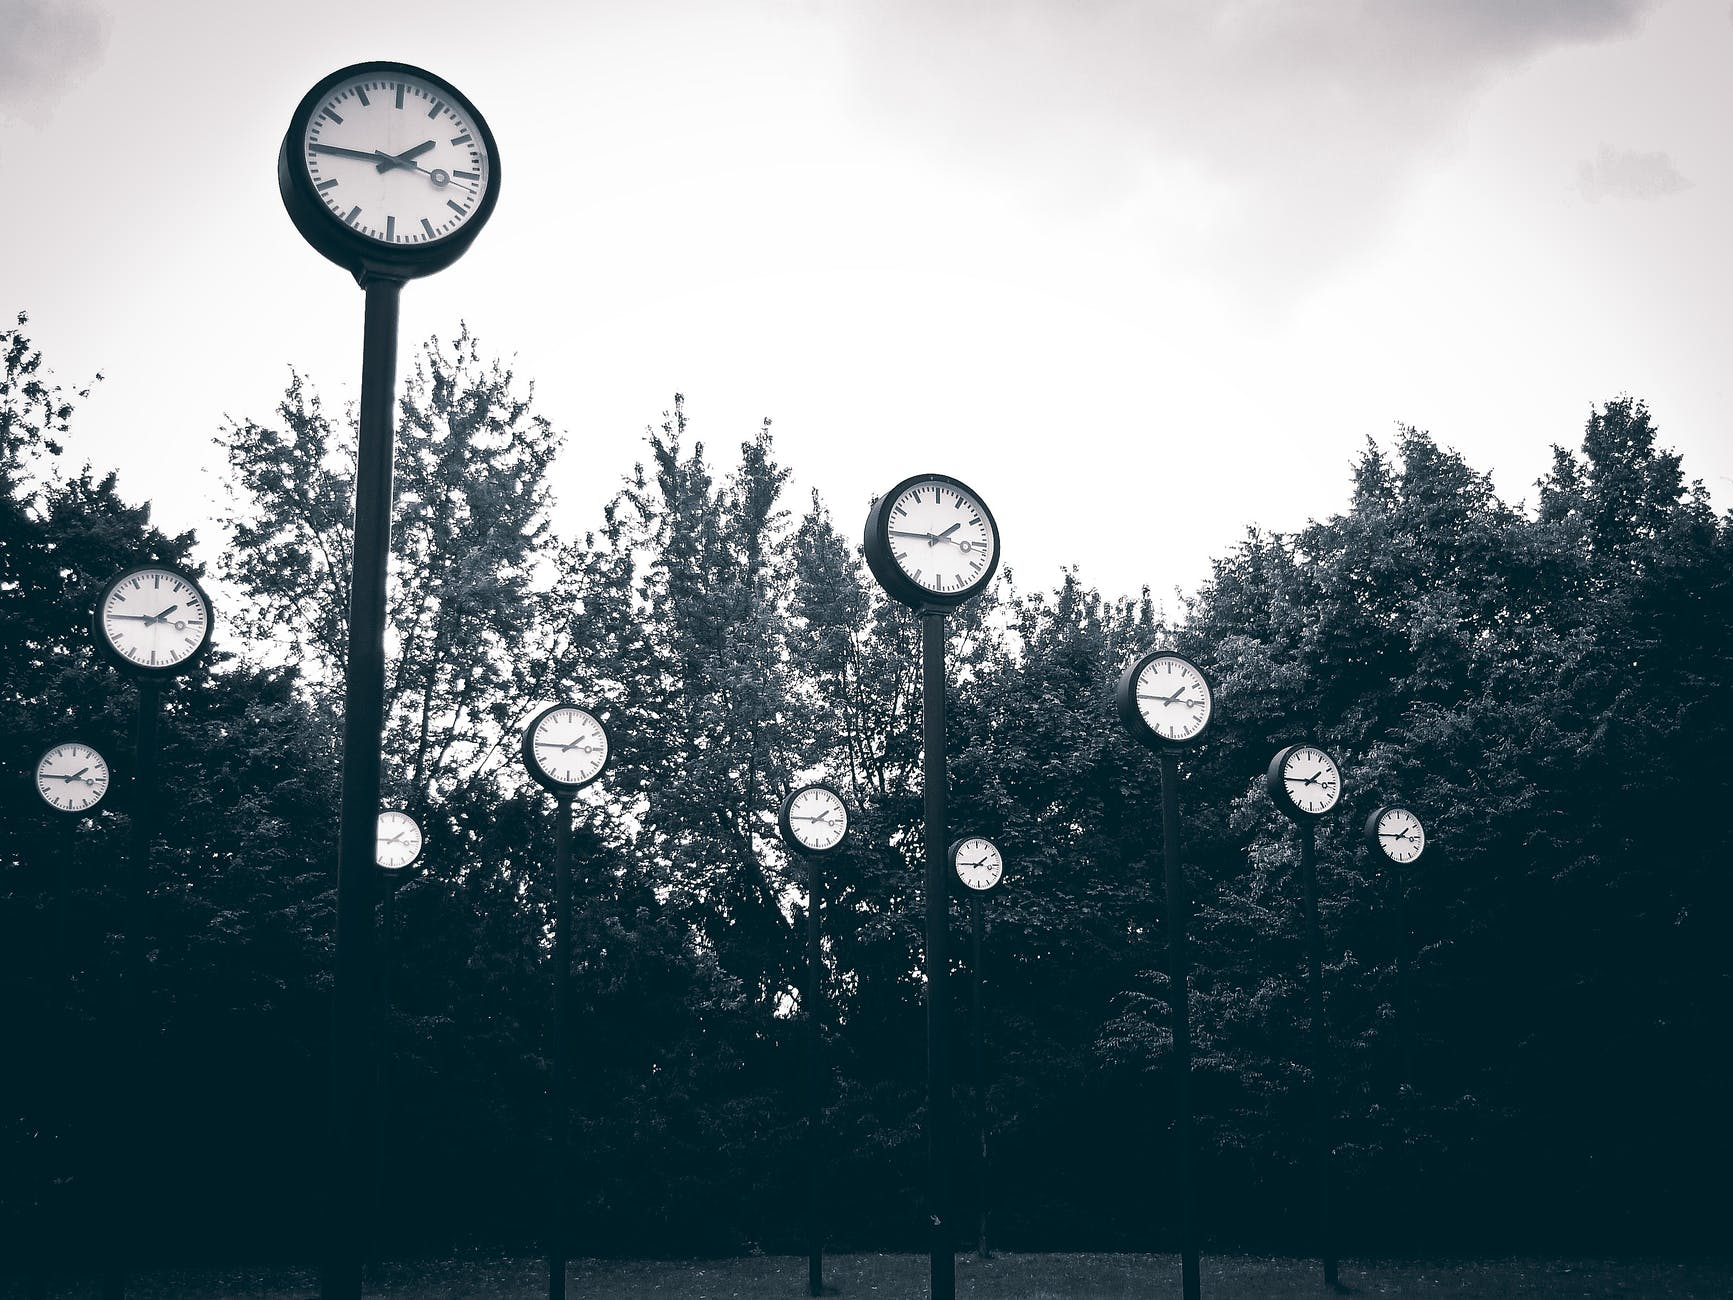 numerous clocks in a field